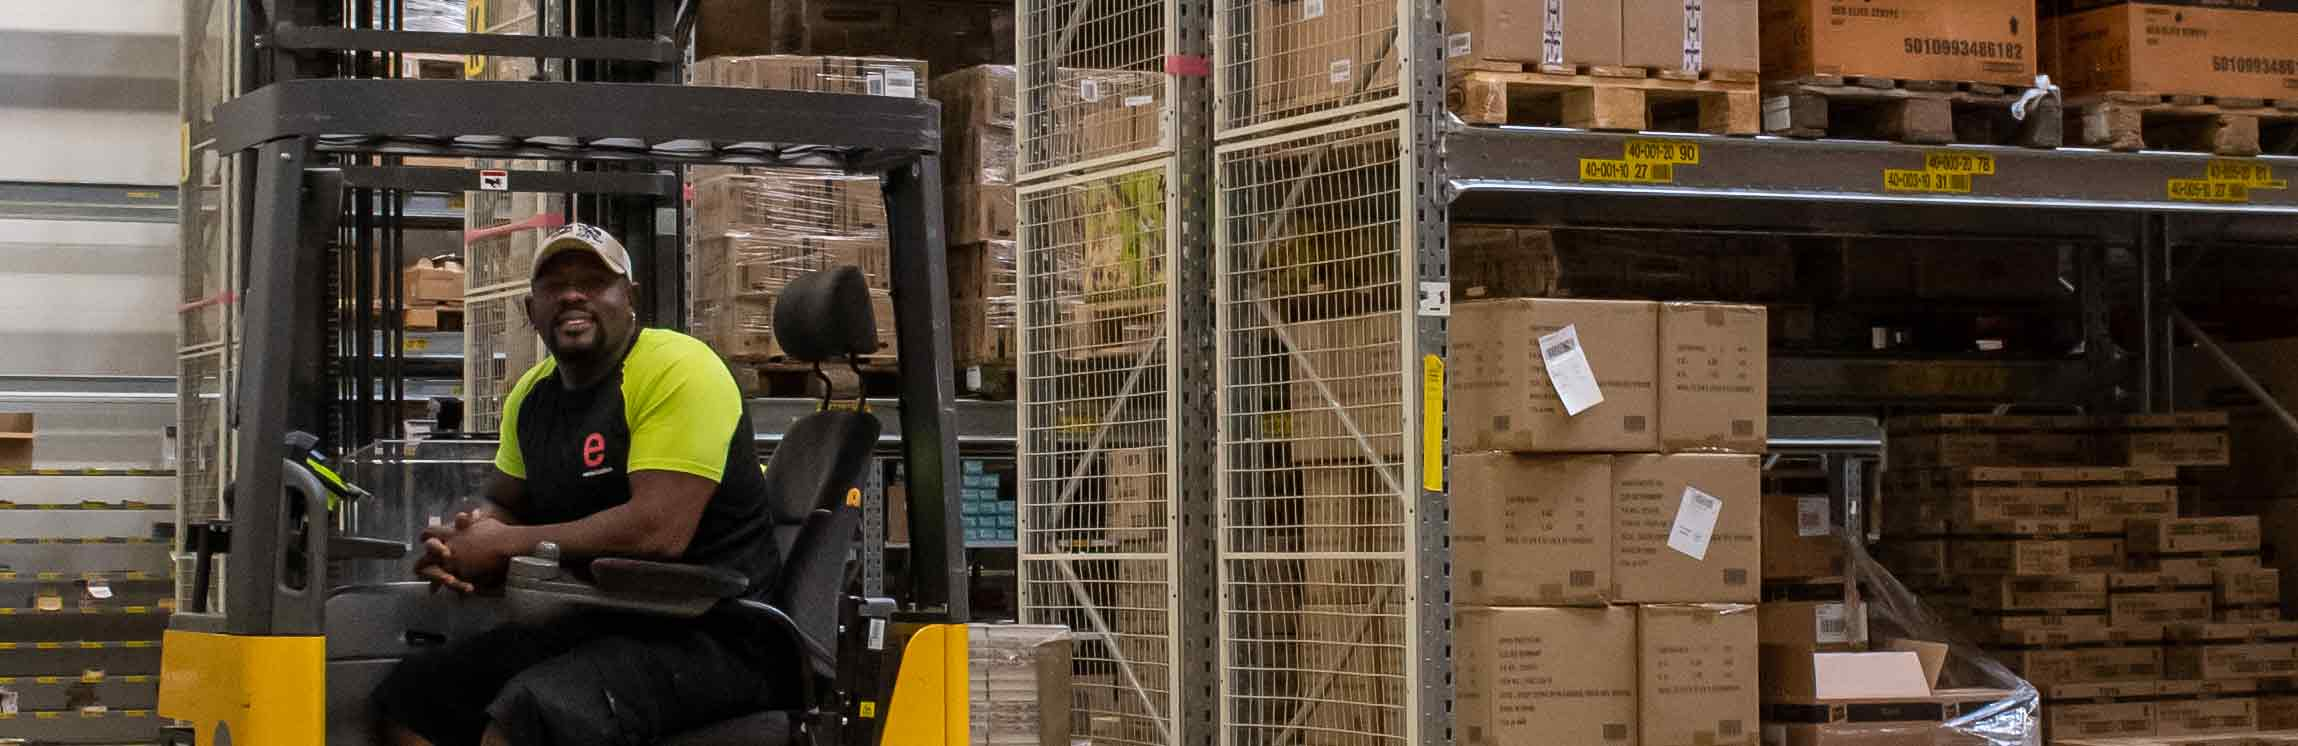 warehouse worker sitting on a truck in a warehouse